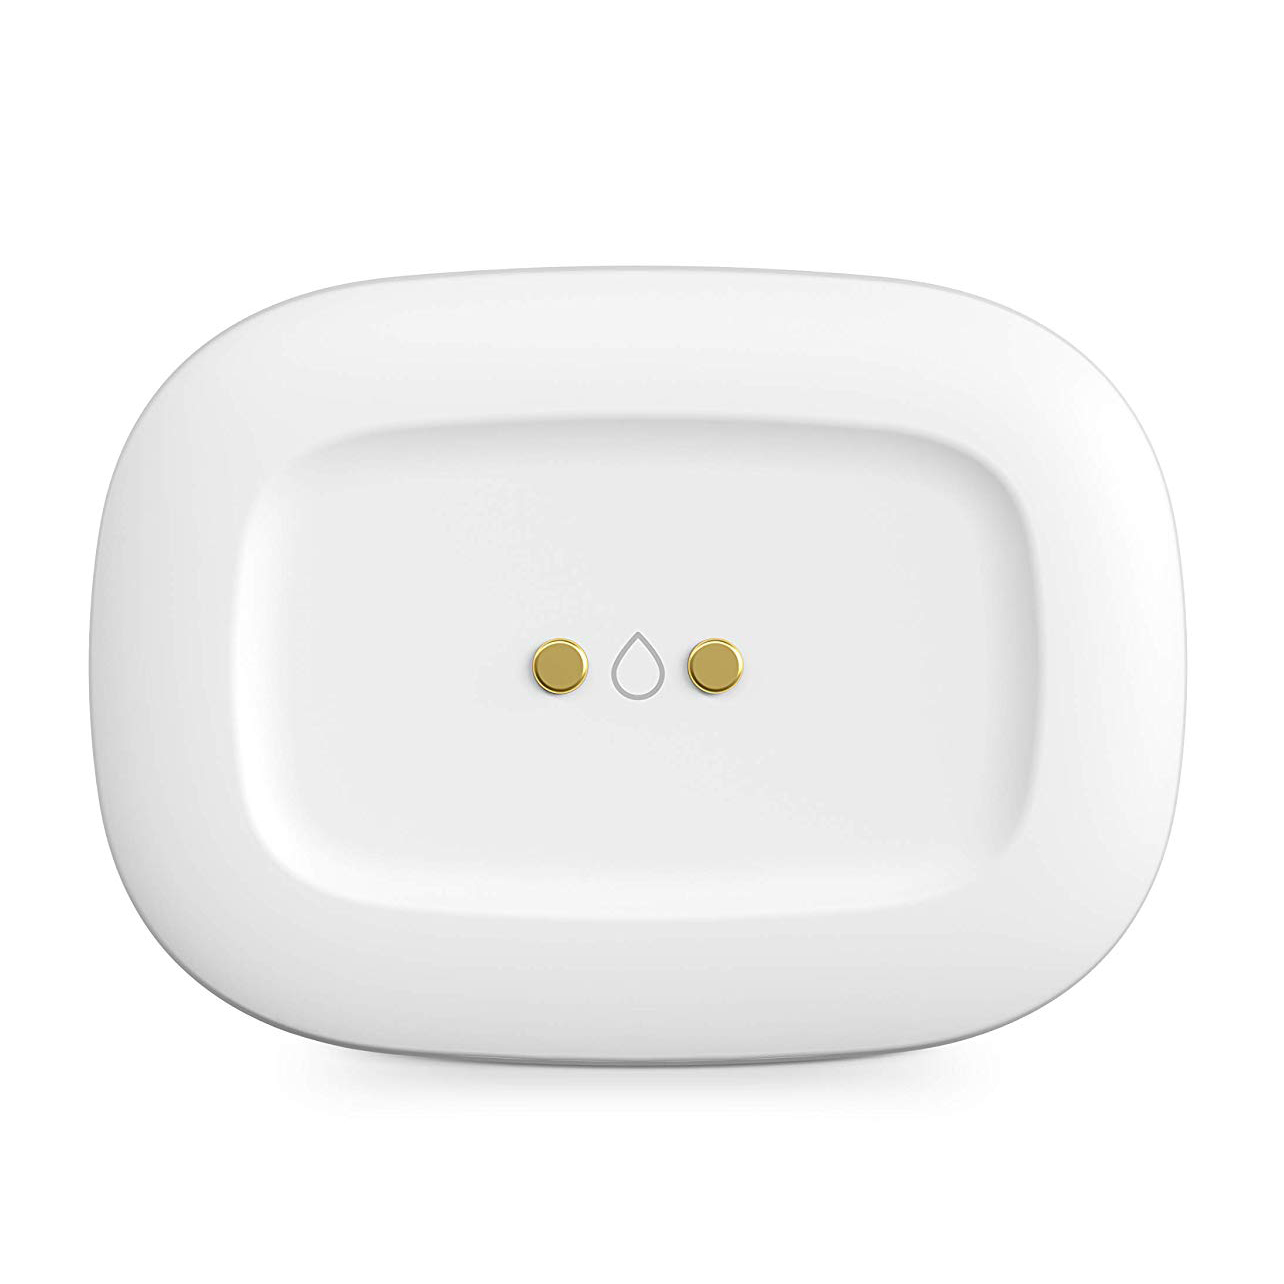 Samsung SmartThings Water Leak Sensor Product Review